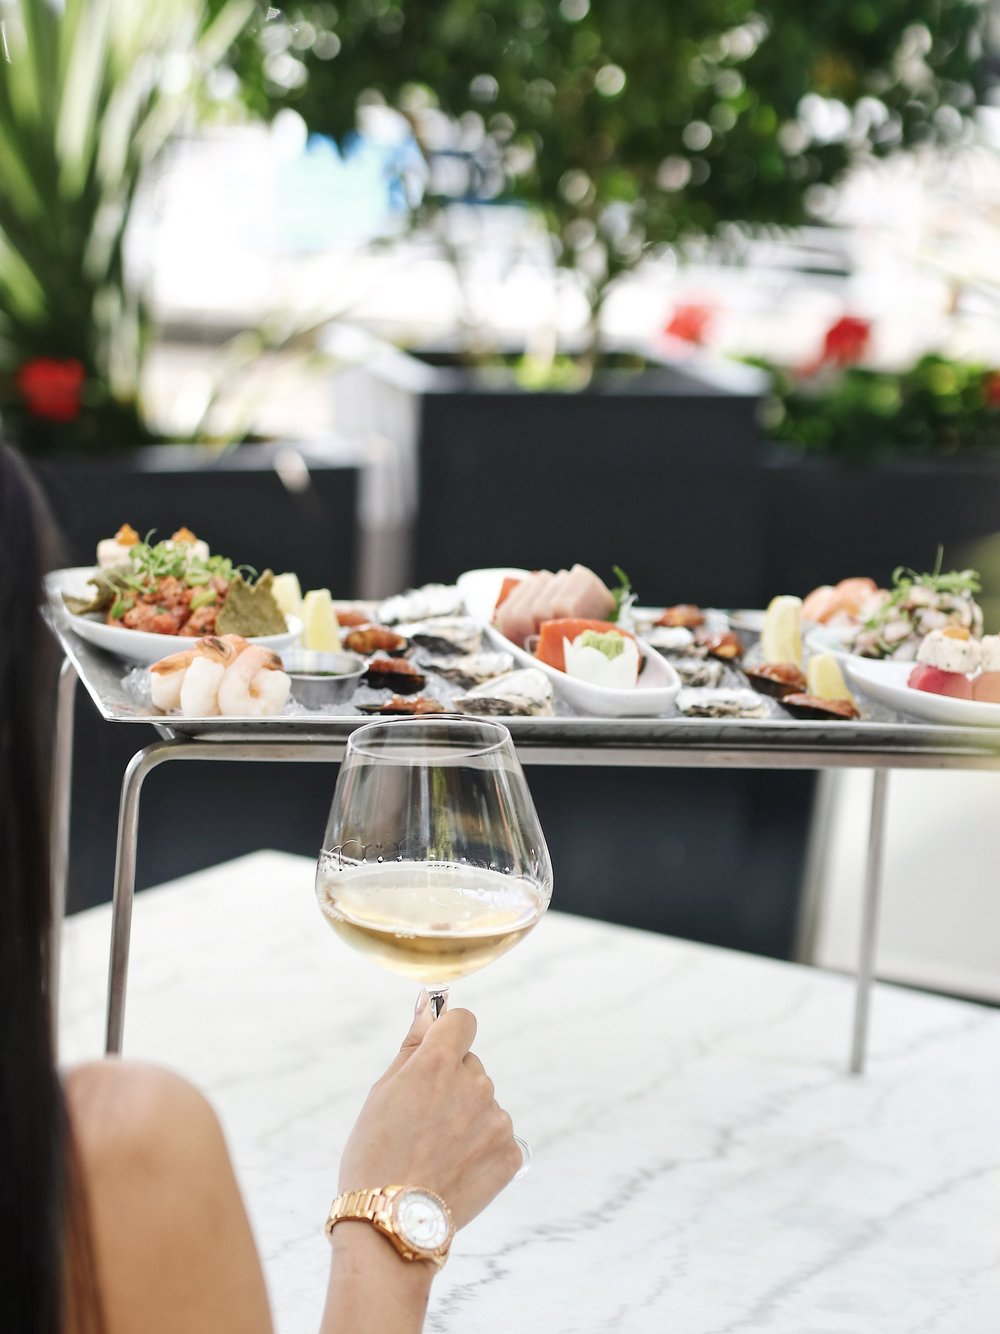 ANCORA WATERFRONT DINING AND PATIO TO OPEN SECONDLOCATION IN WEST VANCOUVER'S AMBLESIDE THIS FALL - September 5, 2018Ancora Waterfront Dining and Patio will bring its signature brand of Peruvian-meets-Japanese 'Nikkei' cuisine to Vancouver's North Shore later this fall when the award-winning restaurant opens a second location at 1351 Bellevue Avenue in West Vancouver's Ambleside.Overlooking the waterfront in the high-profile Grosvenor Ambleside development with panoramic views of notable Vancouver landmarks like the Lions Gate Bridge, Stanley Park and Vancouver's West Side, Ancora's new location will feature seating for 104 in its expansive dining room and bar and 38 on its patio.